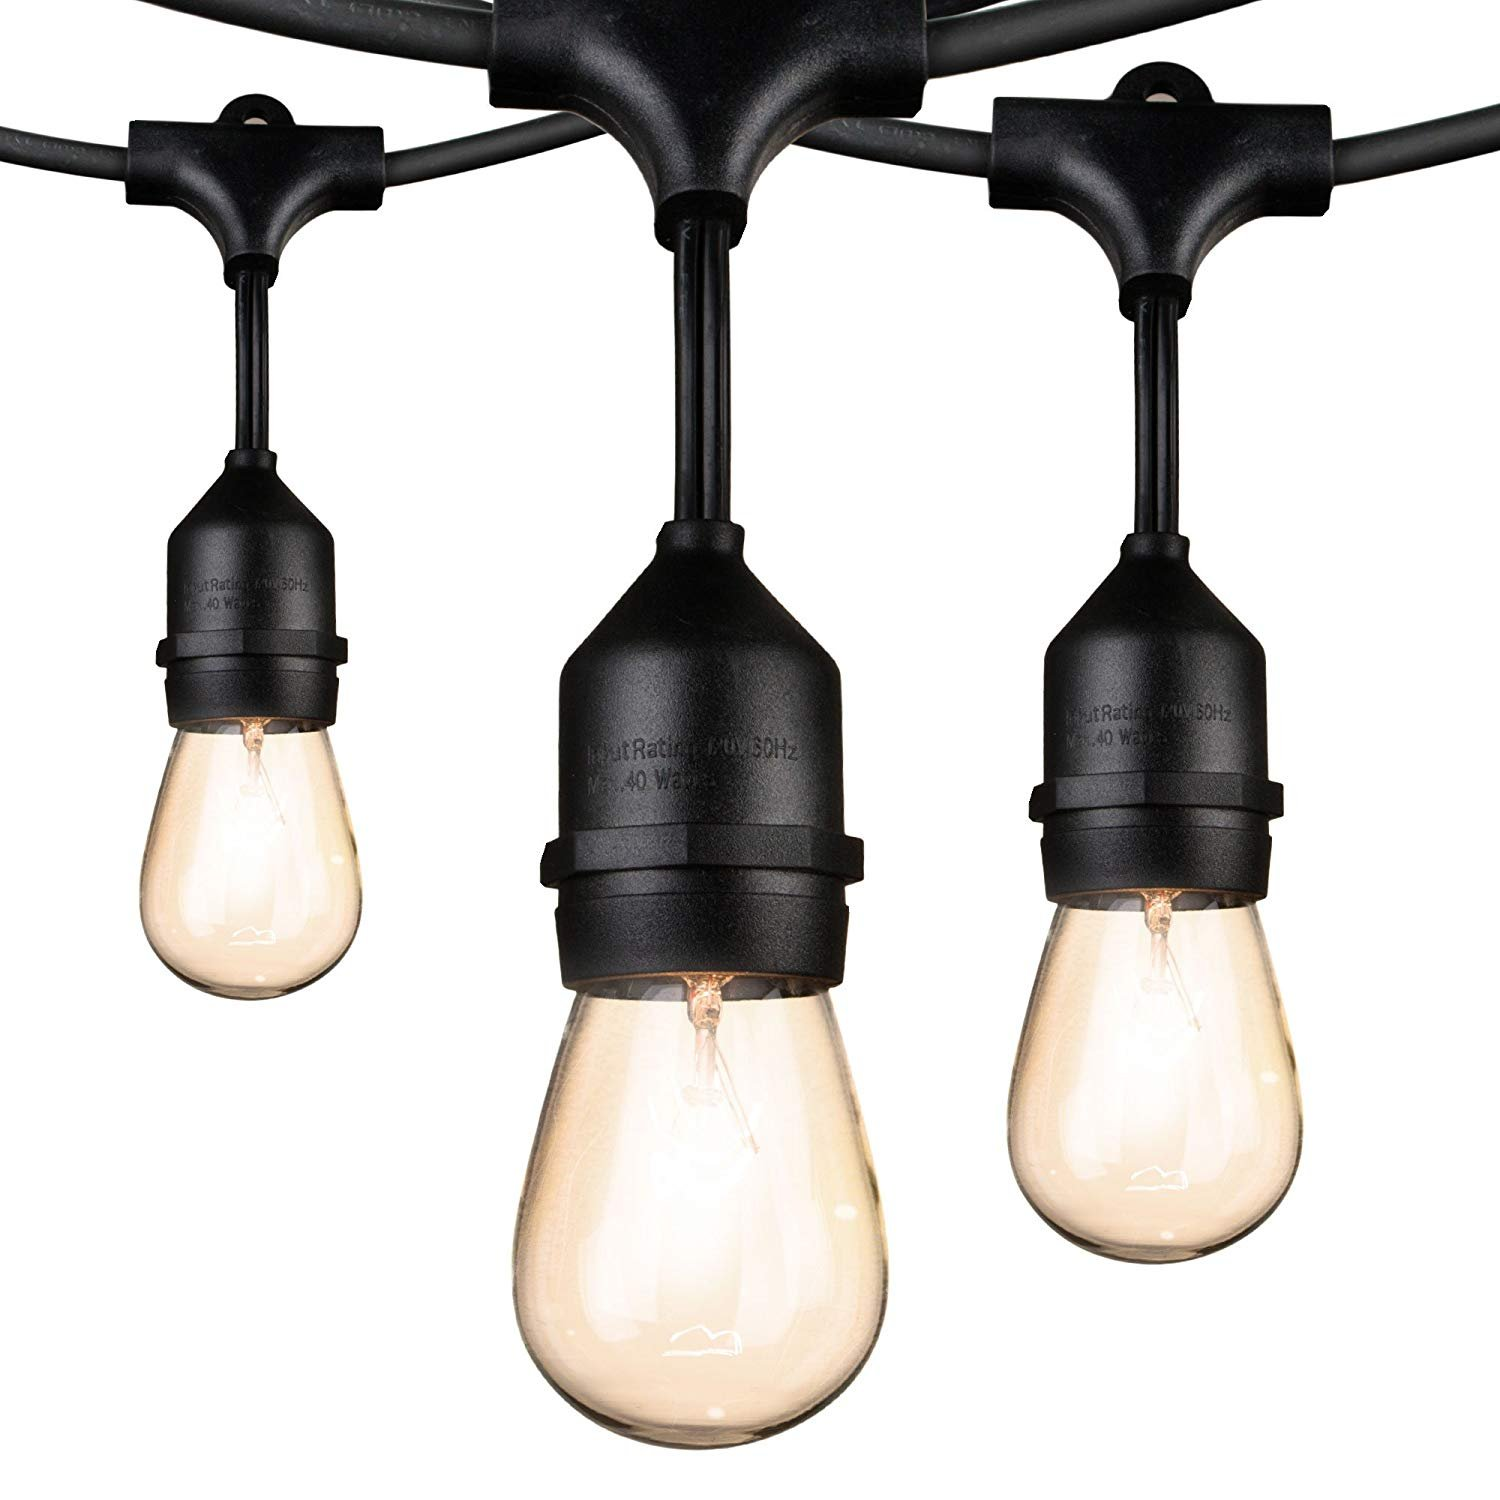 48Ft Weatherproof Outdoor Patio String Lights with E26 Base Sockets & S14 Bulbs, Hanging Market Cafe Edison Vintage Strand for Deckyard Backyard Bistro Pergola Wedding Gathering Party, Black by GiveBest